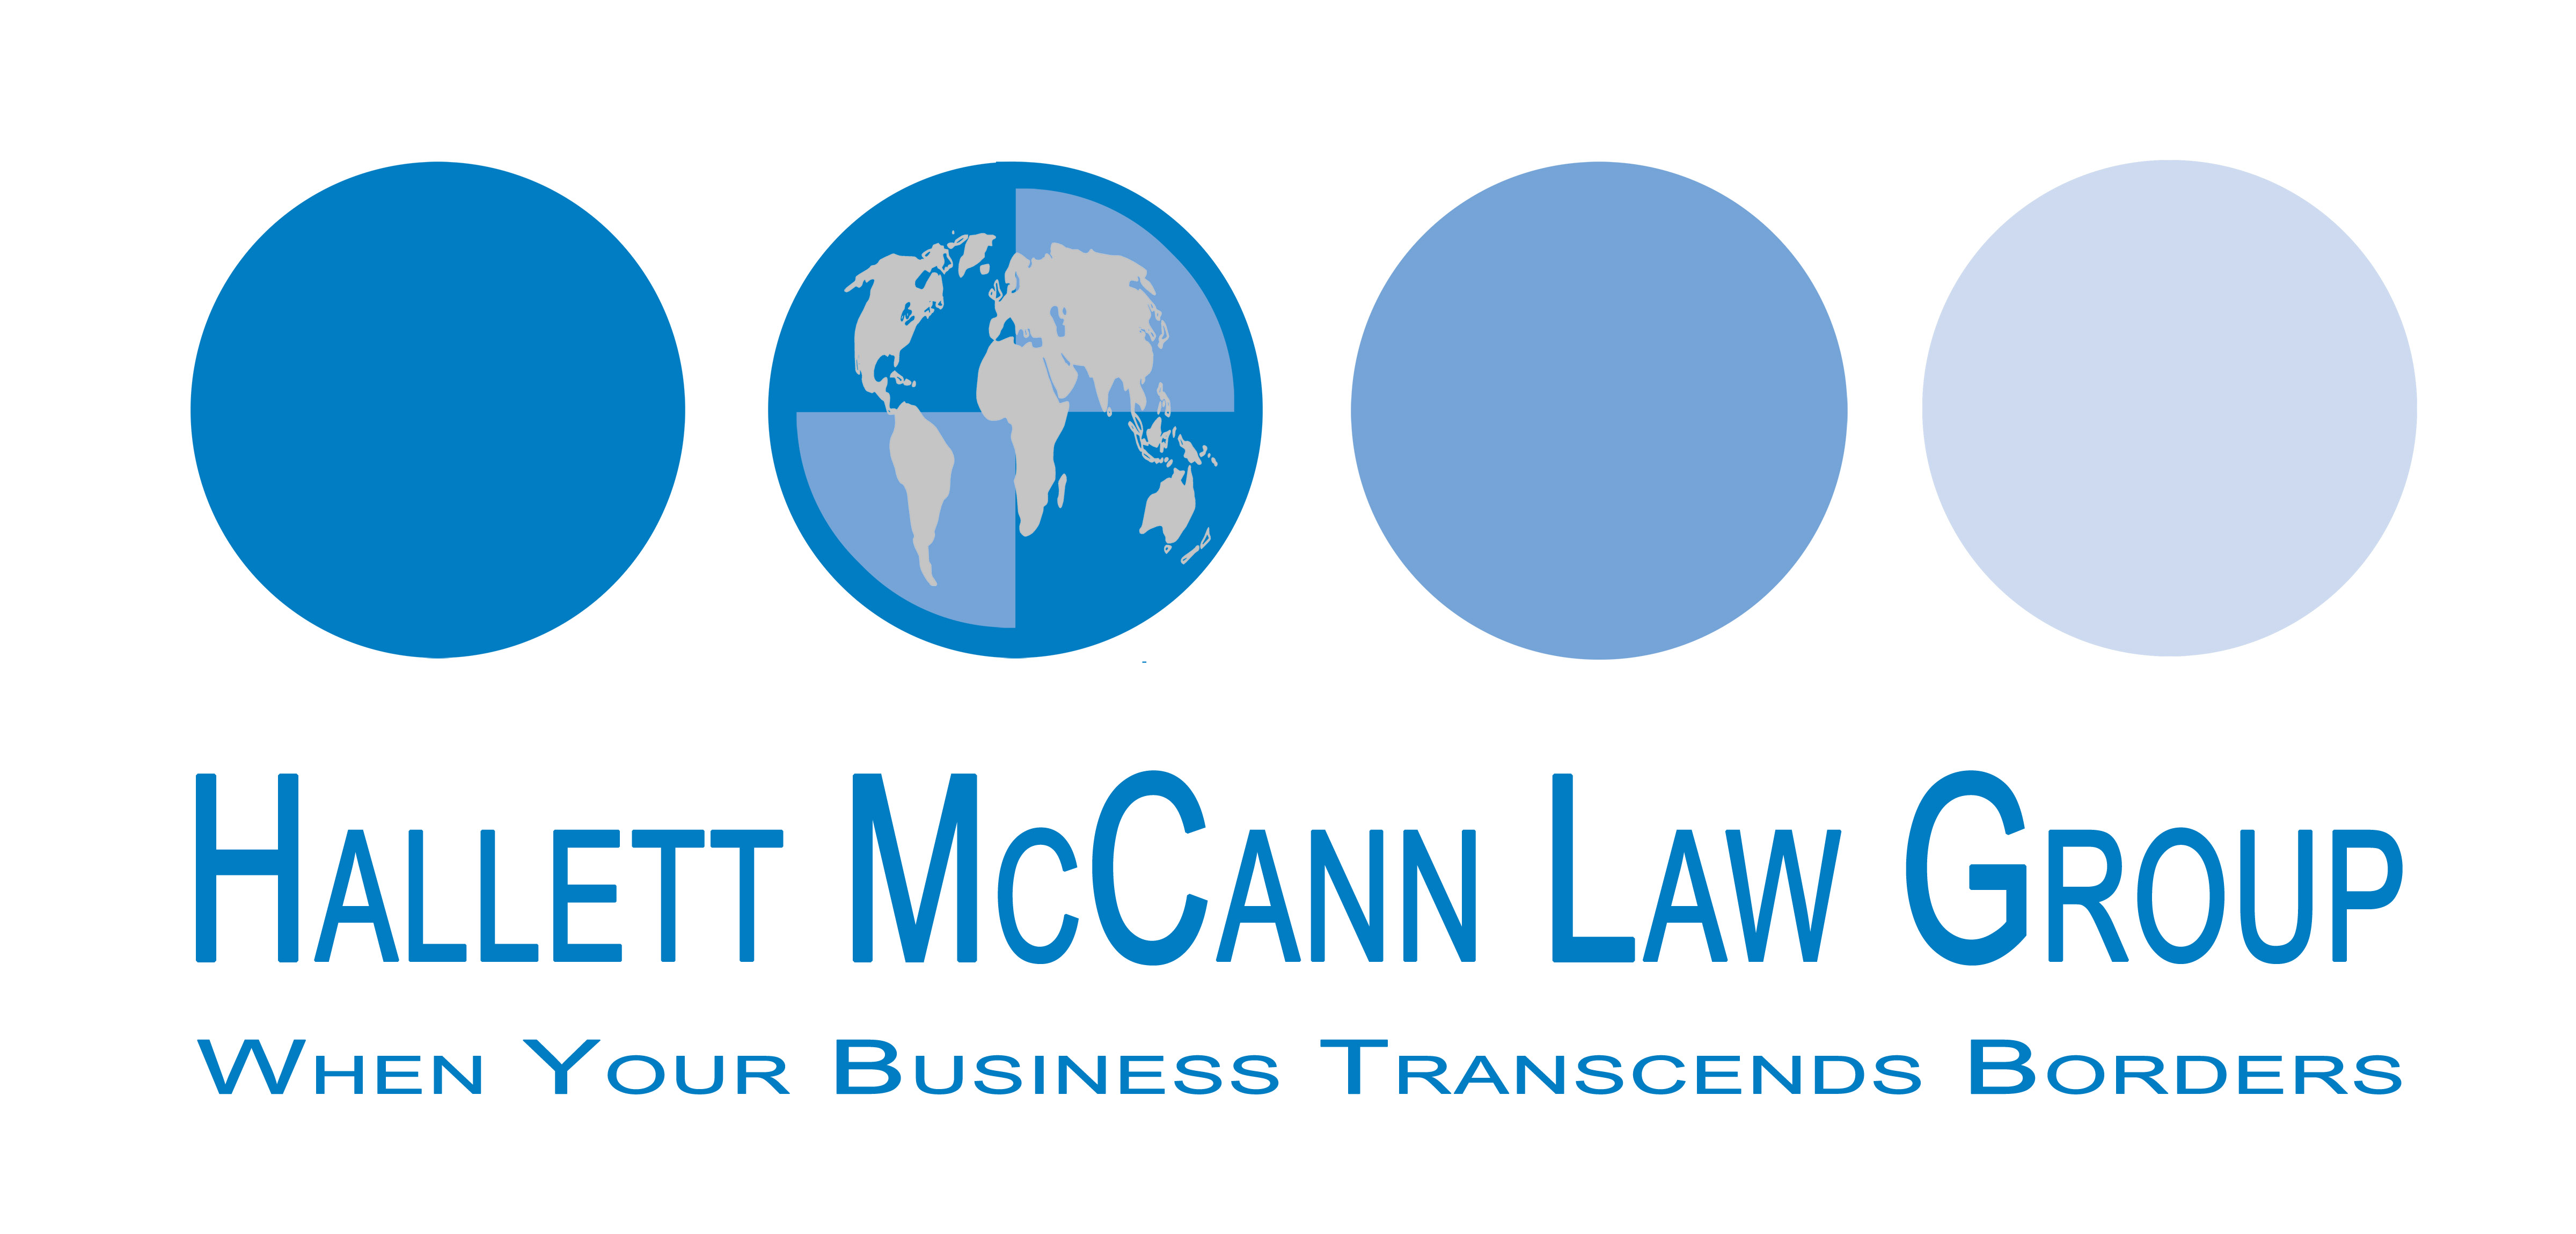 Hallett McCann Law Group